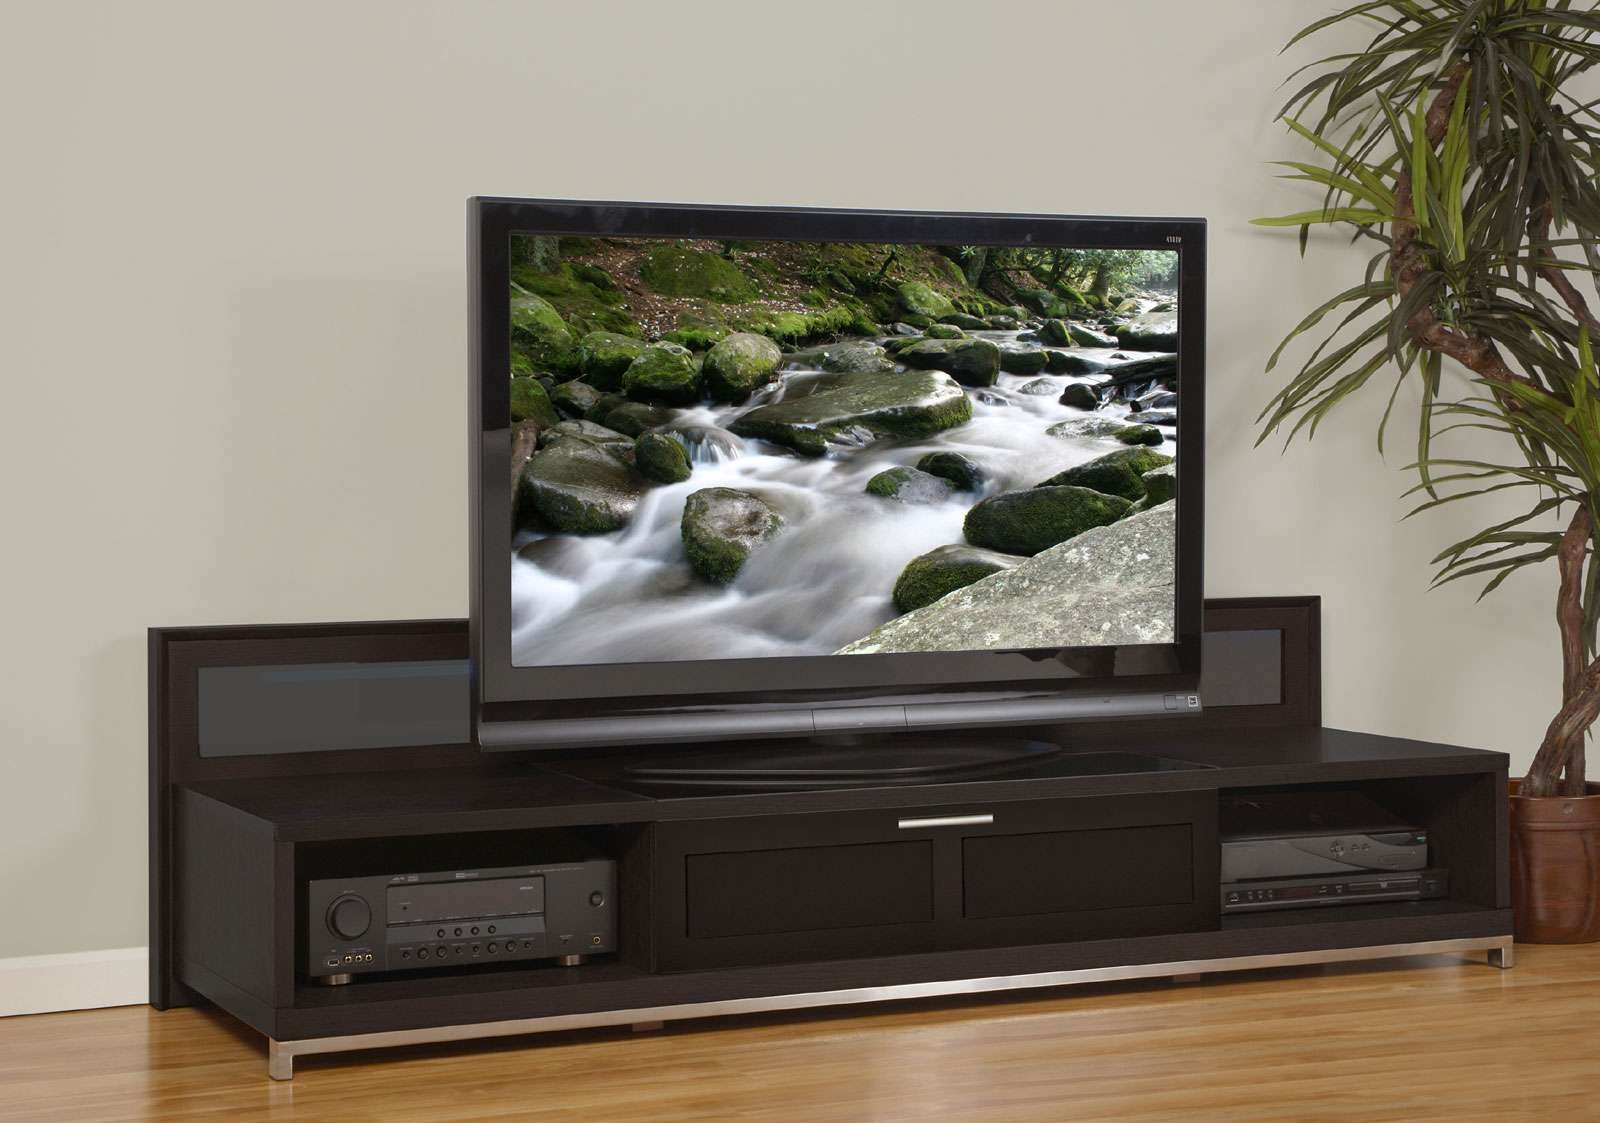 Modern Black Tone Wide Screen Tv Stand With Display Shelves And Regarding Wide Screen Tv Stands (View 14 of 15)